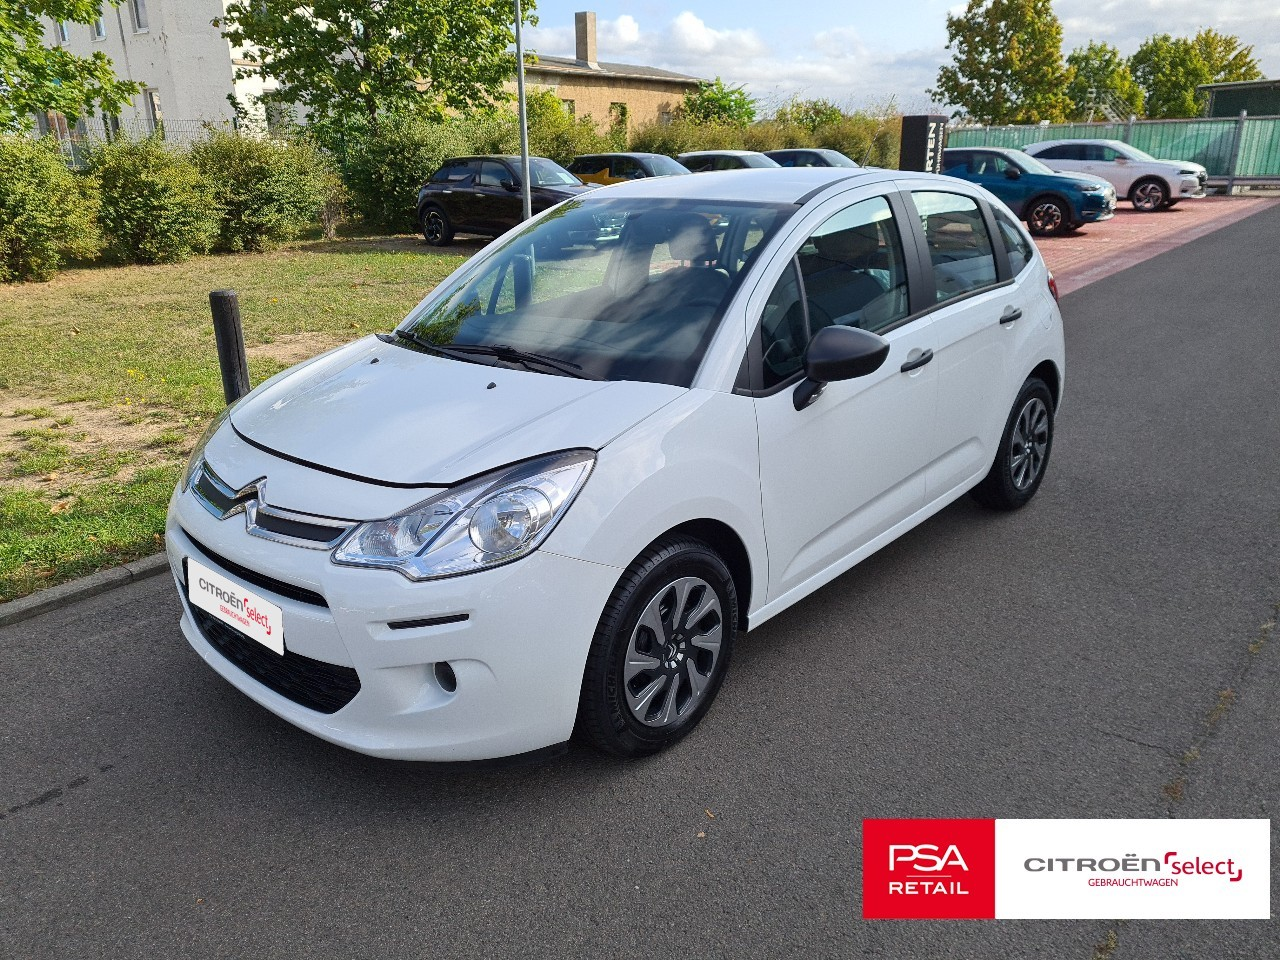 Citroën C3 Pure Tech (VTi) 68 Attraction/ Klima/ ZV /ESP